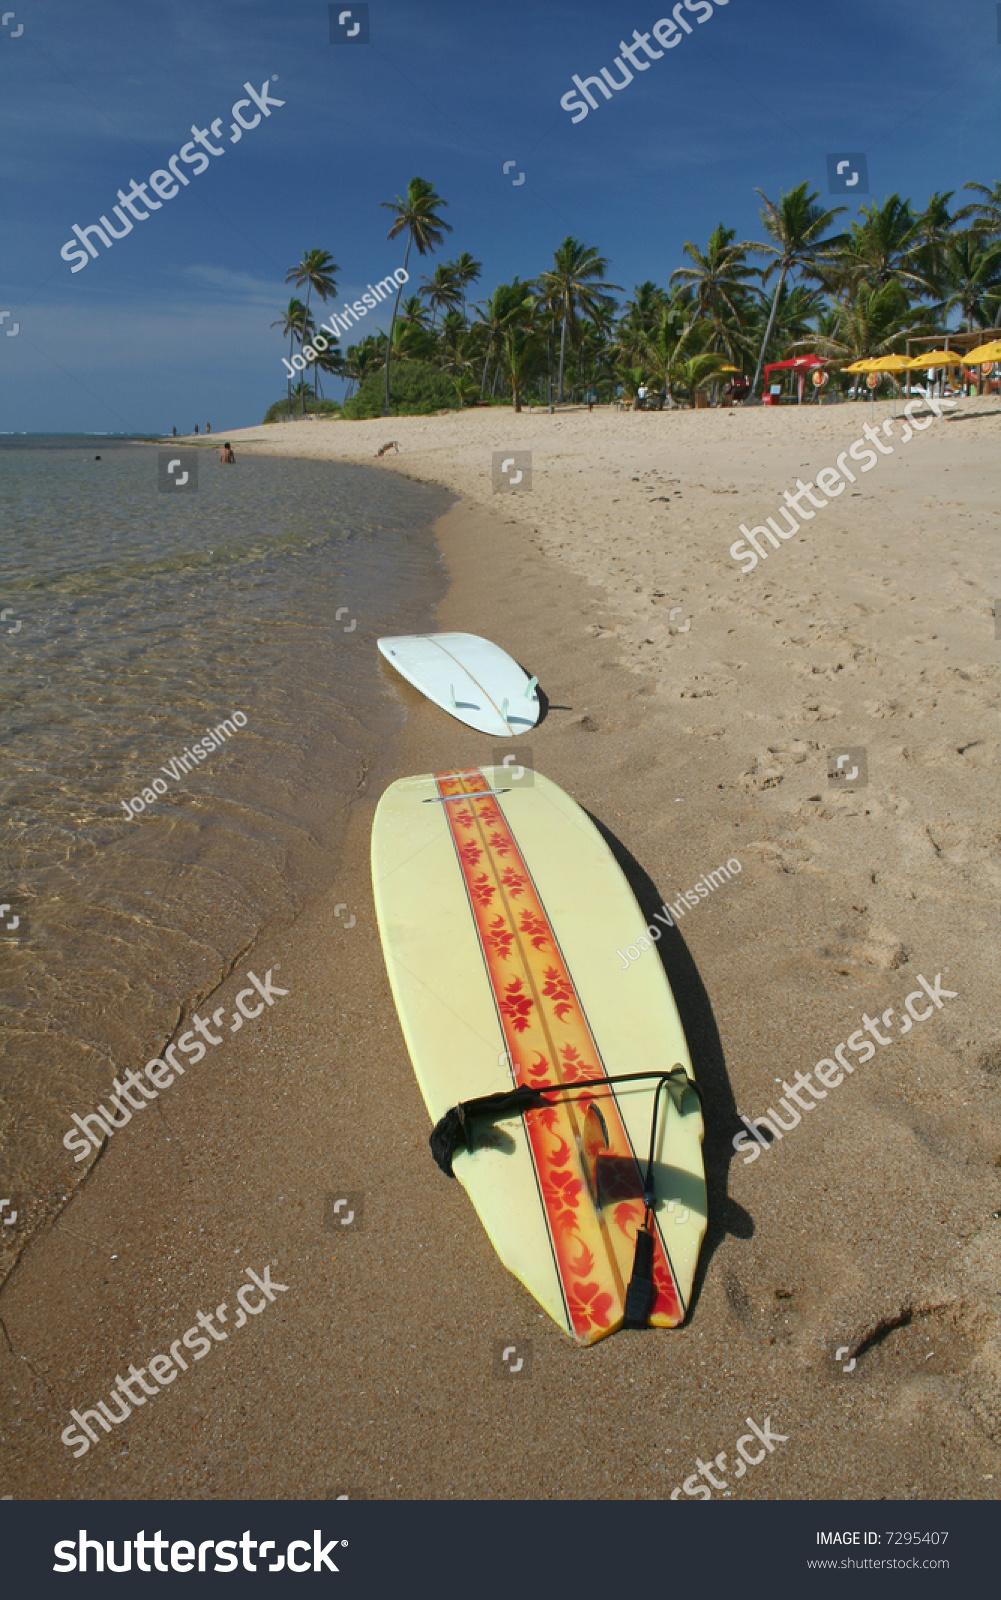 Surfboards Laying On The Beach Stock Photo 7295407 ...